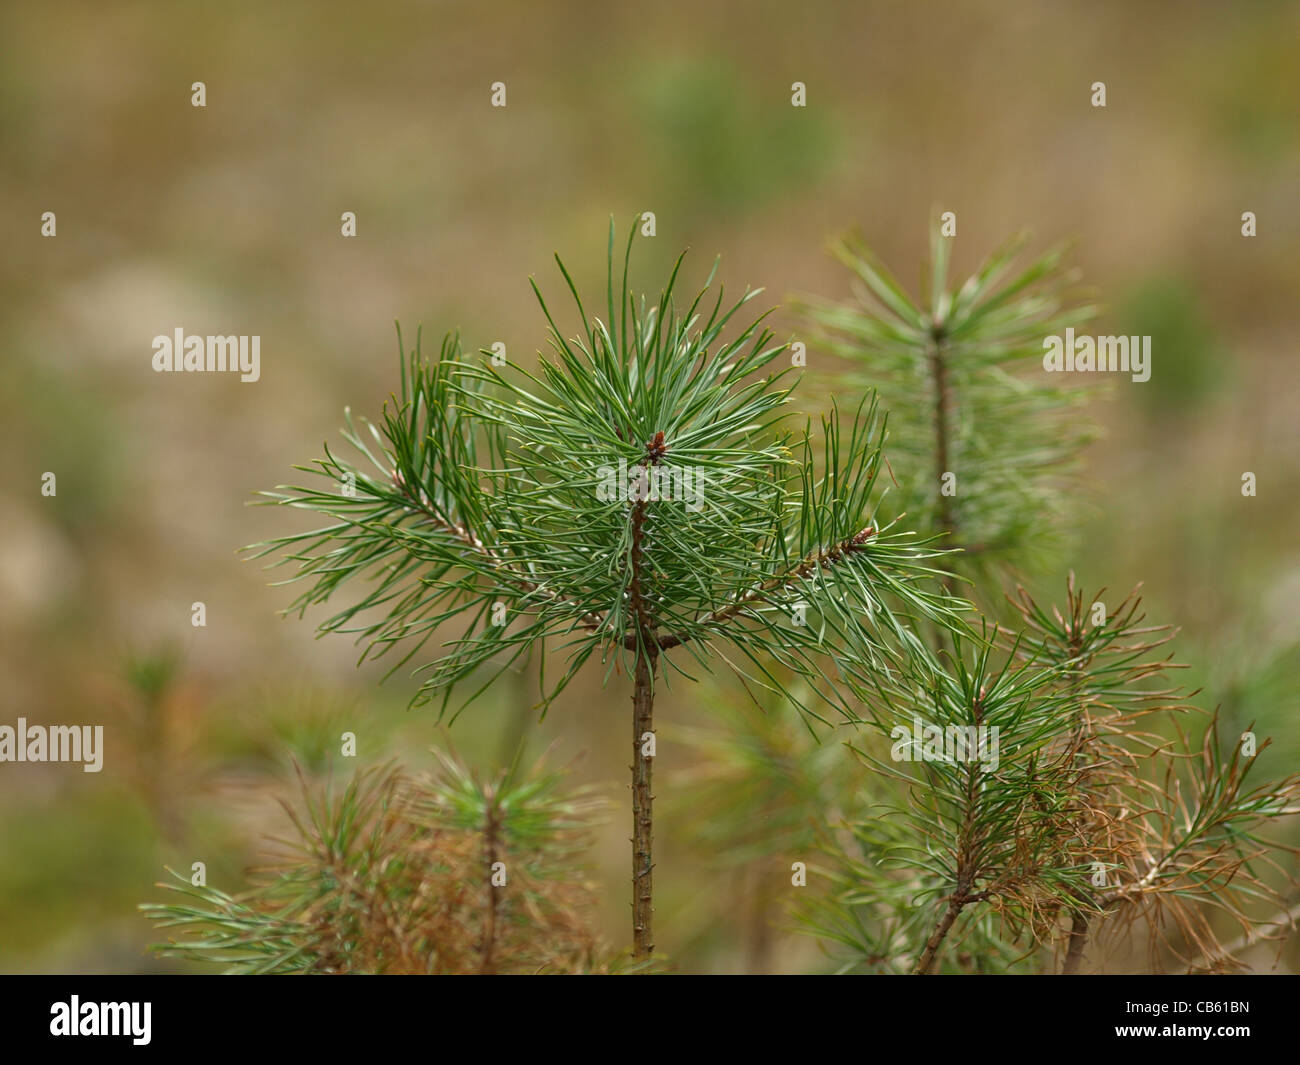 young spruce seedling / junge Kiefern - Stock Image